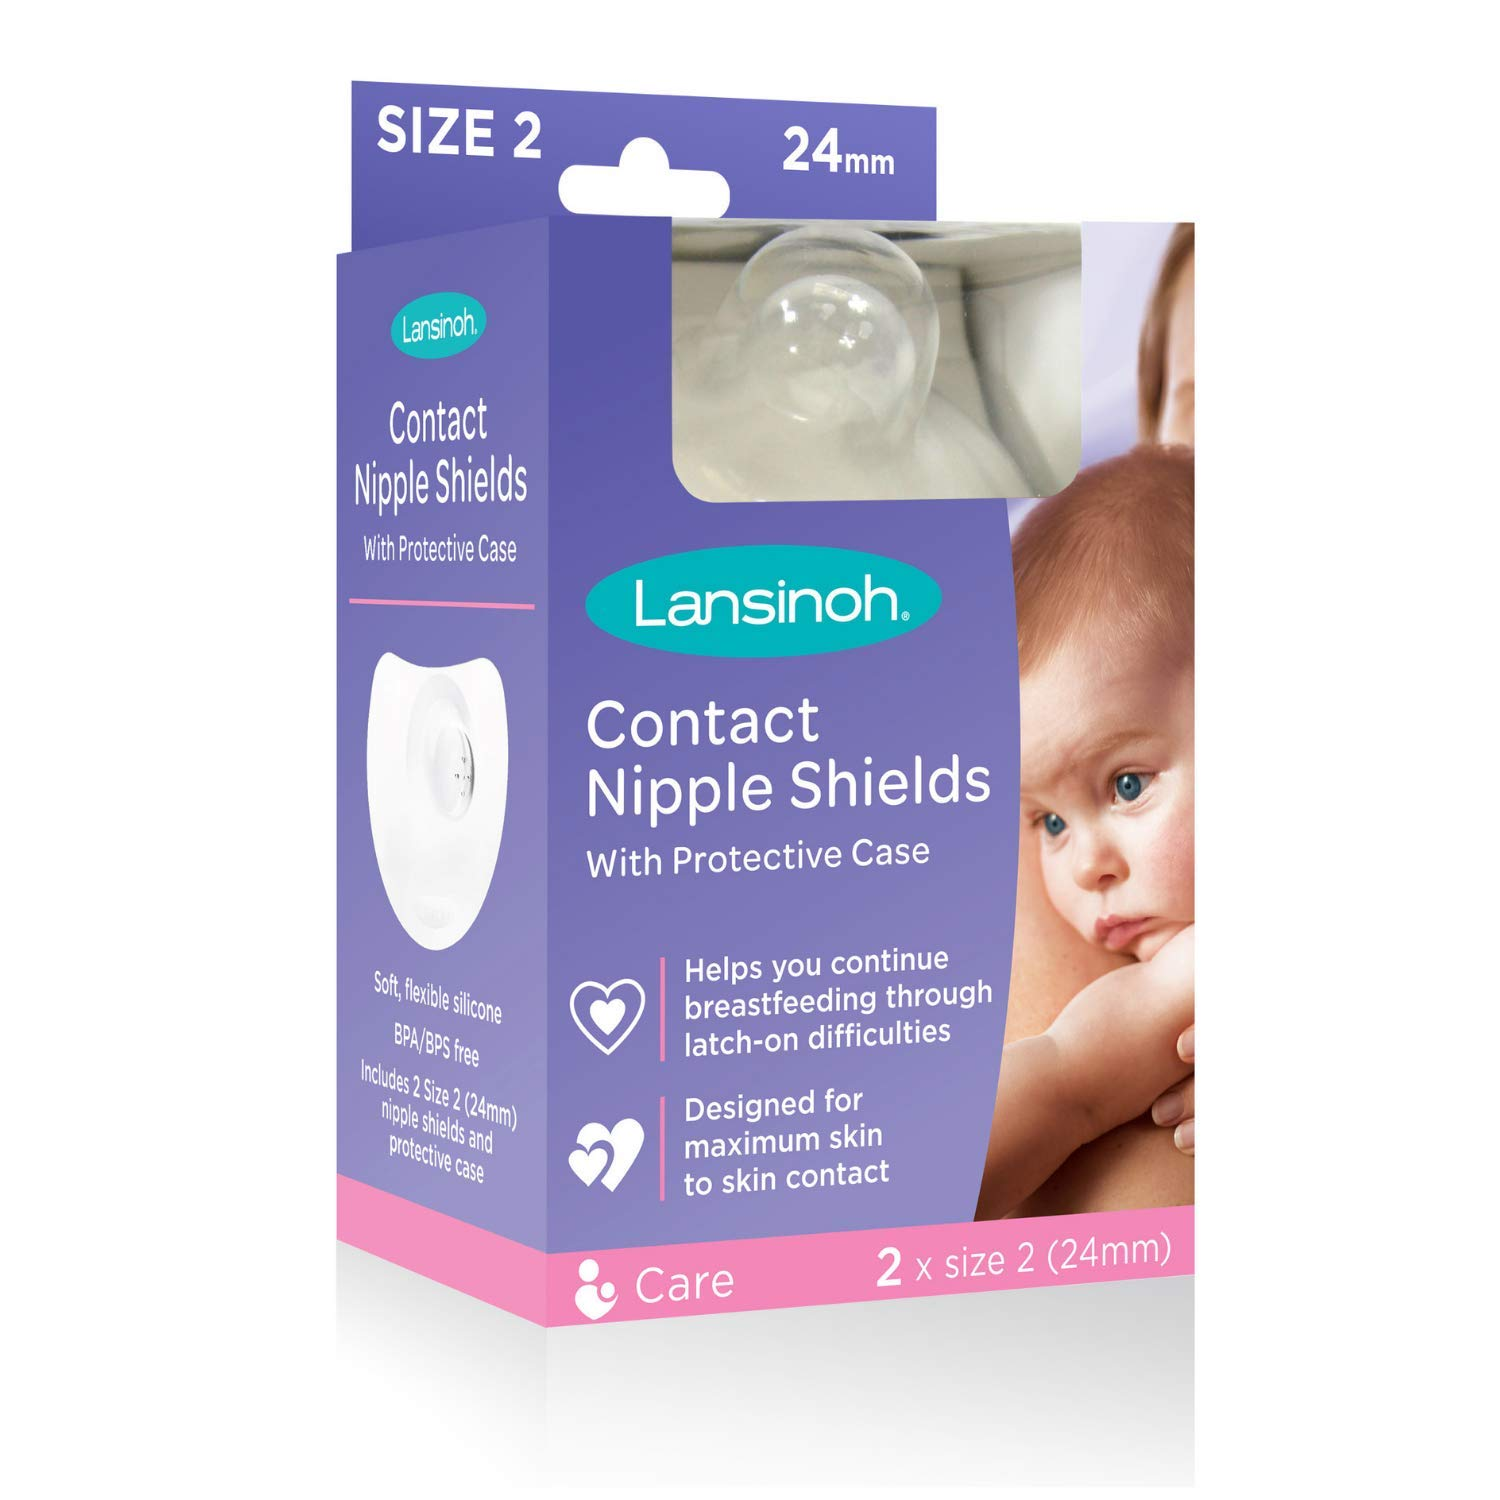 Contact Shields Breastfeeding Latch Flat Made Nipple Shield 24mm Size Medium